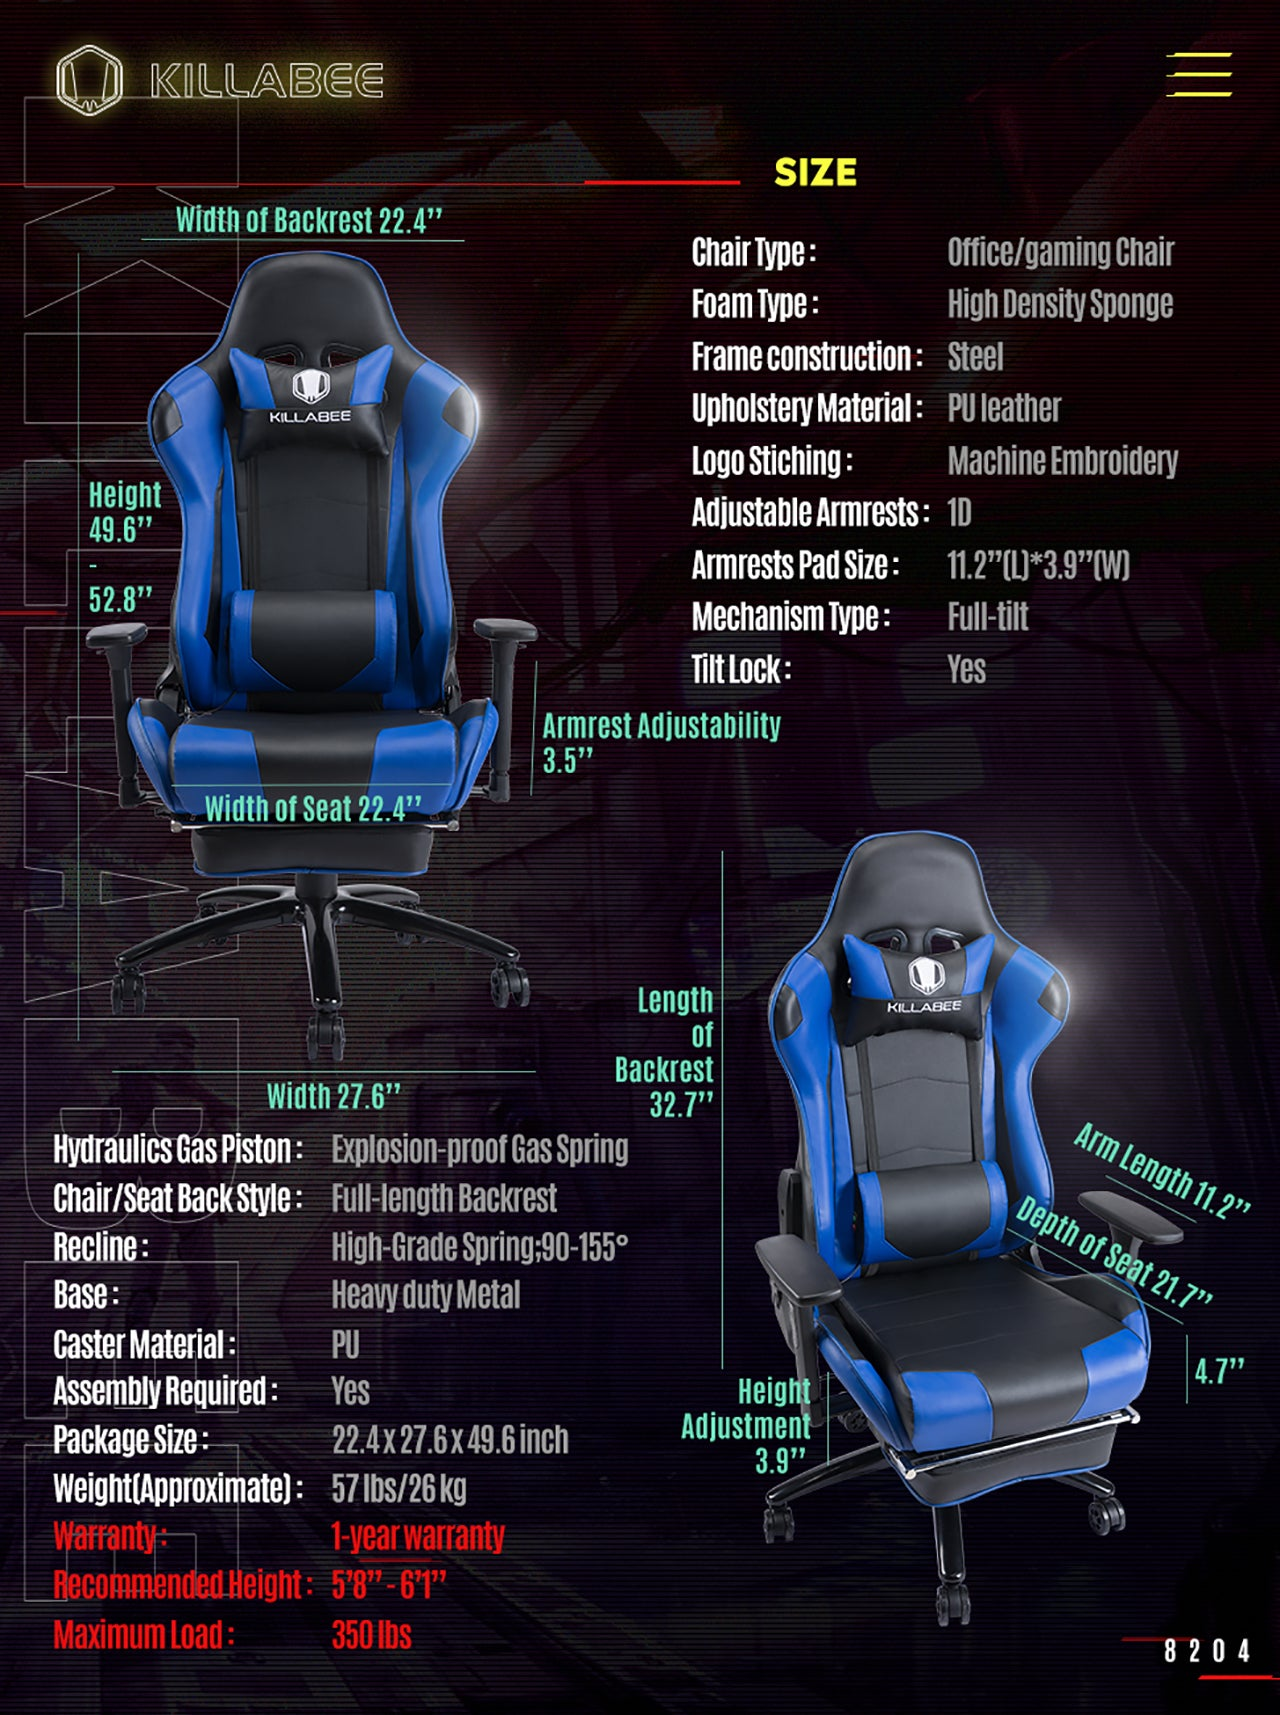 KILLABEE RACING GAMING CHAIR 8204 BLUE SPECIFICATION